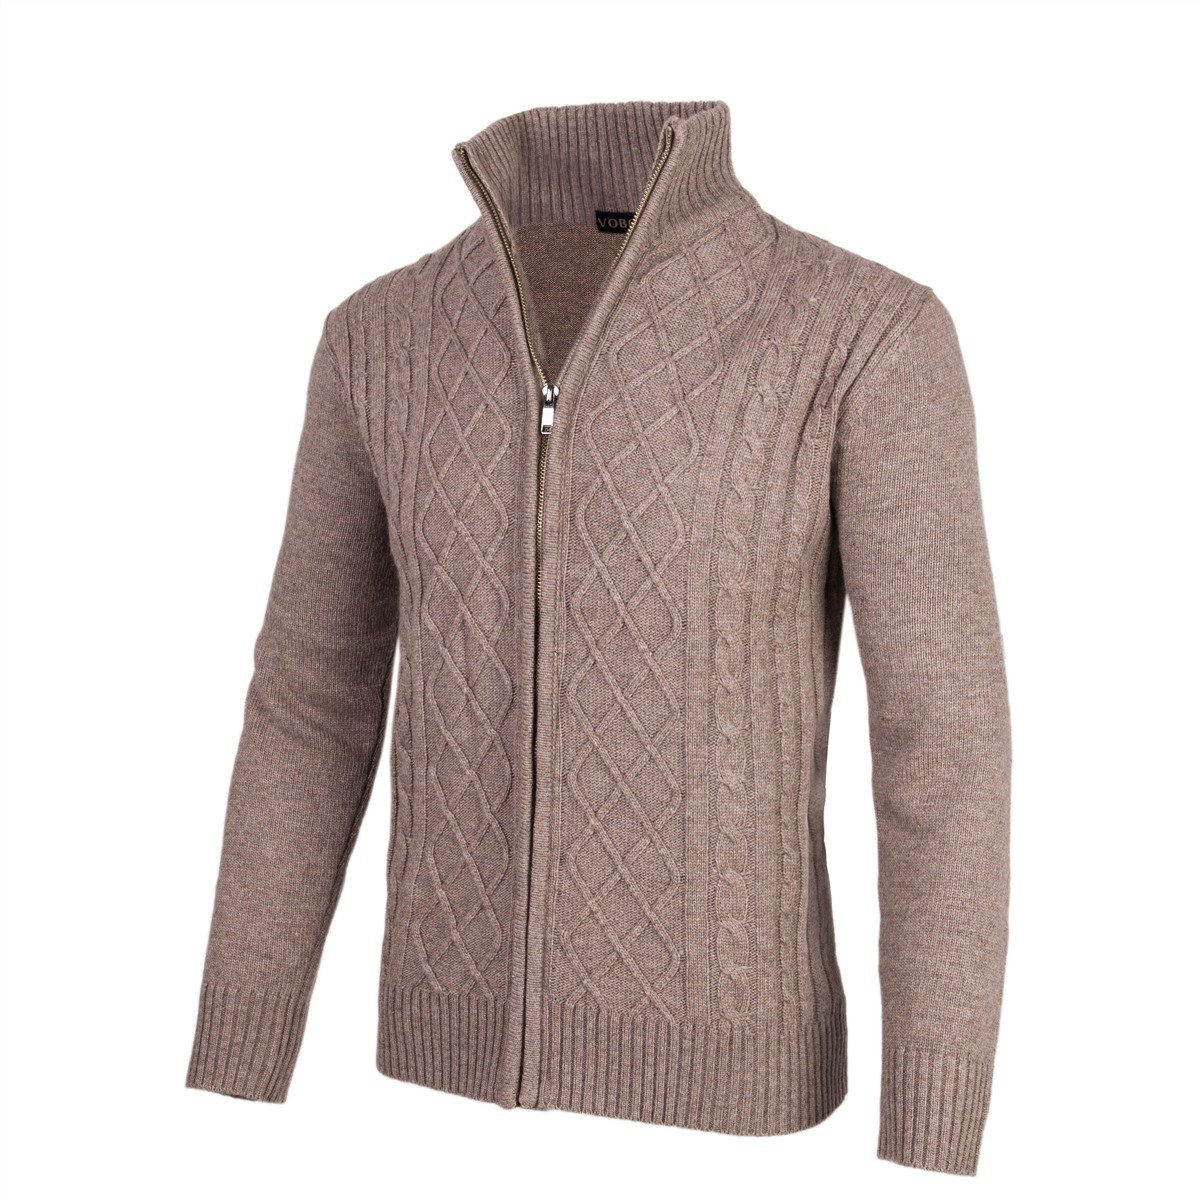 431f32ab8953 Top 10 wholesale Mens Cable Cardigan - Chinabrands.com